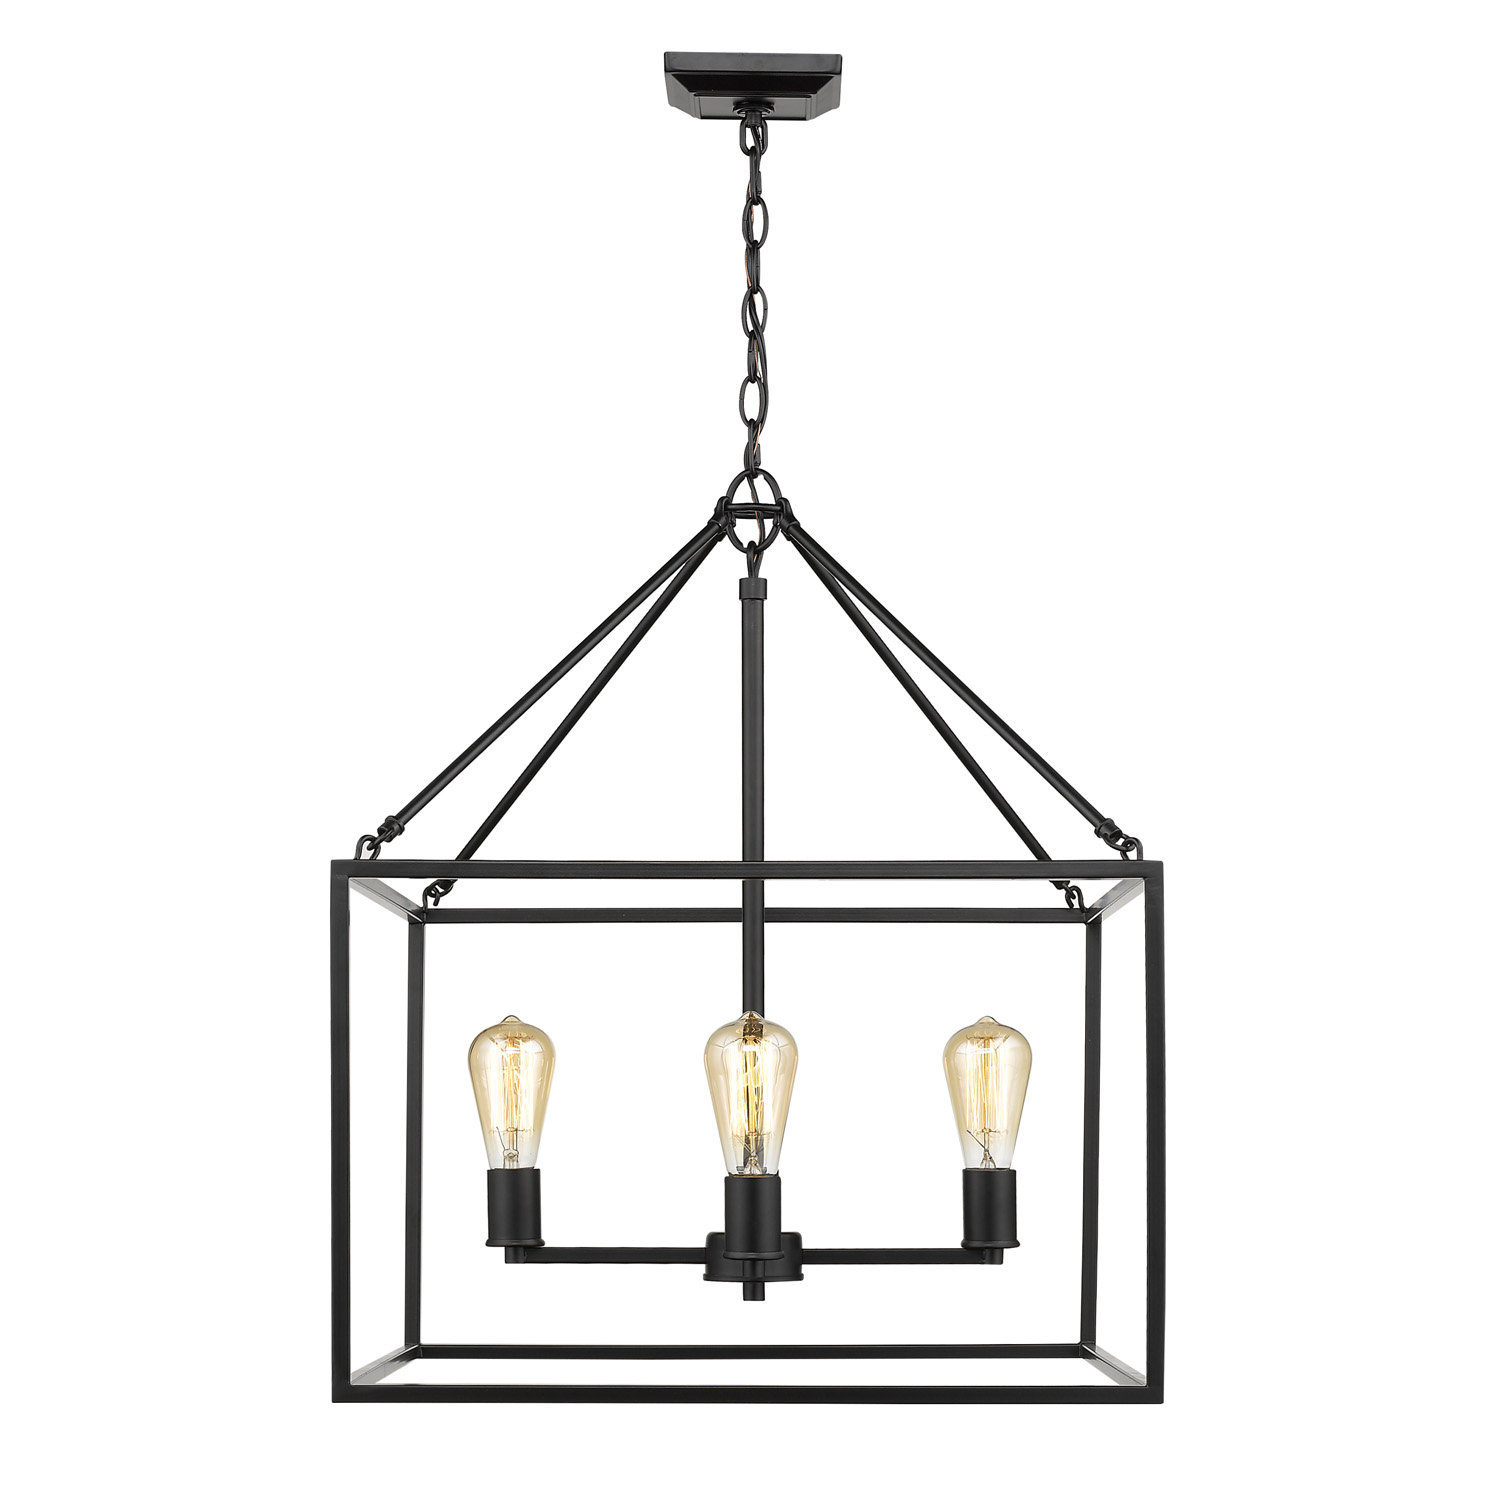 Zabel 4-Light Lantern Square / Rectangle Pendant inside Sherri-Ann 3-Light Lantern Square / Rectangle Pendants (Image 29 of 30)